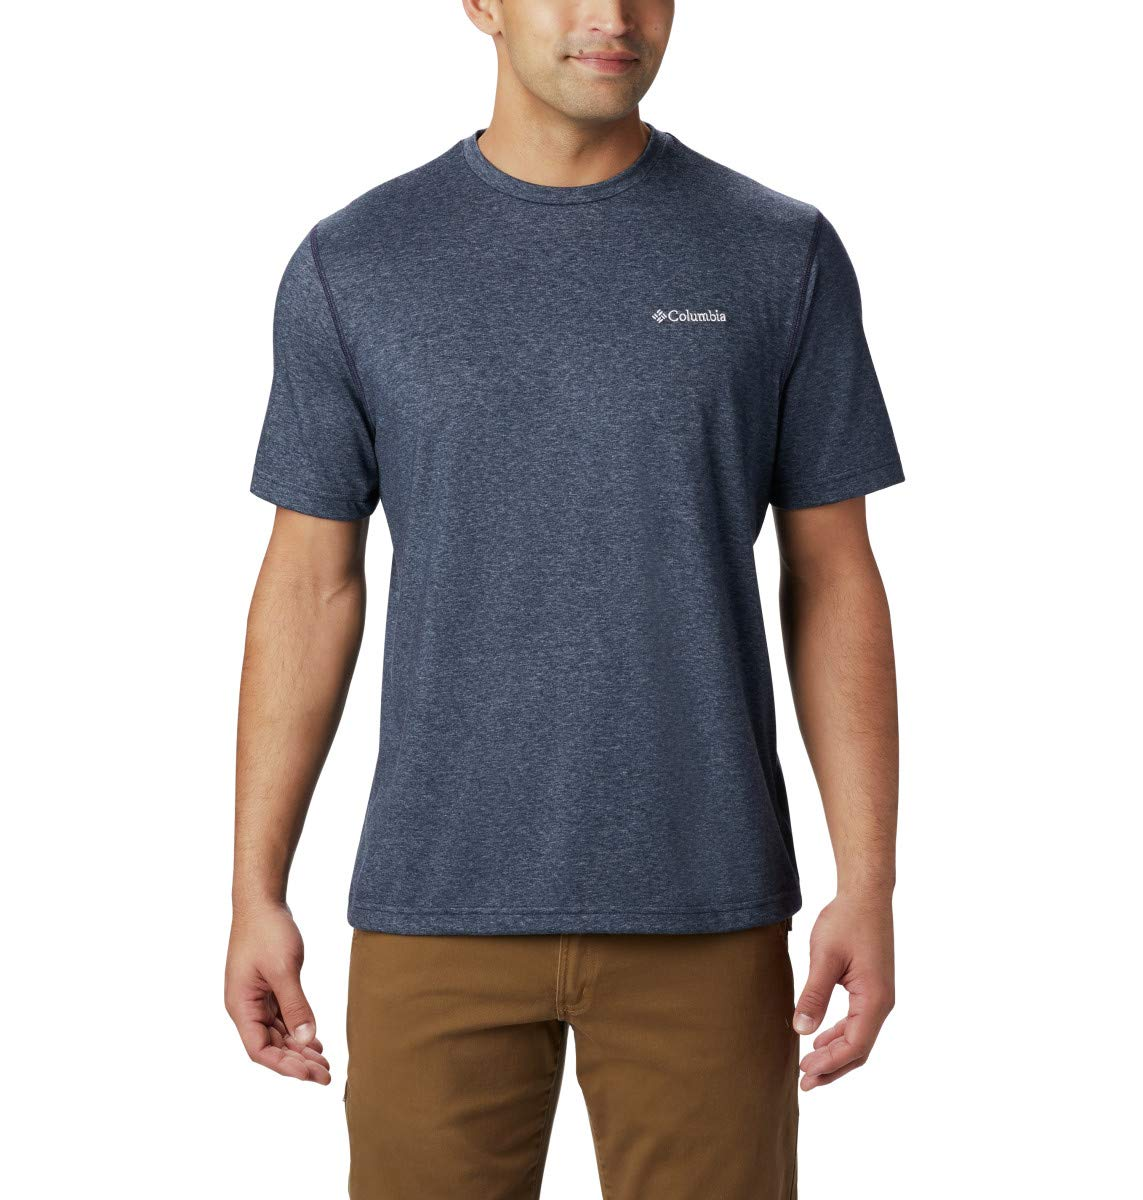 Columbia Men's Thistletown Park Crew Short Sleeve Tee, Small - Nocturnal Heather